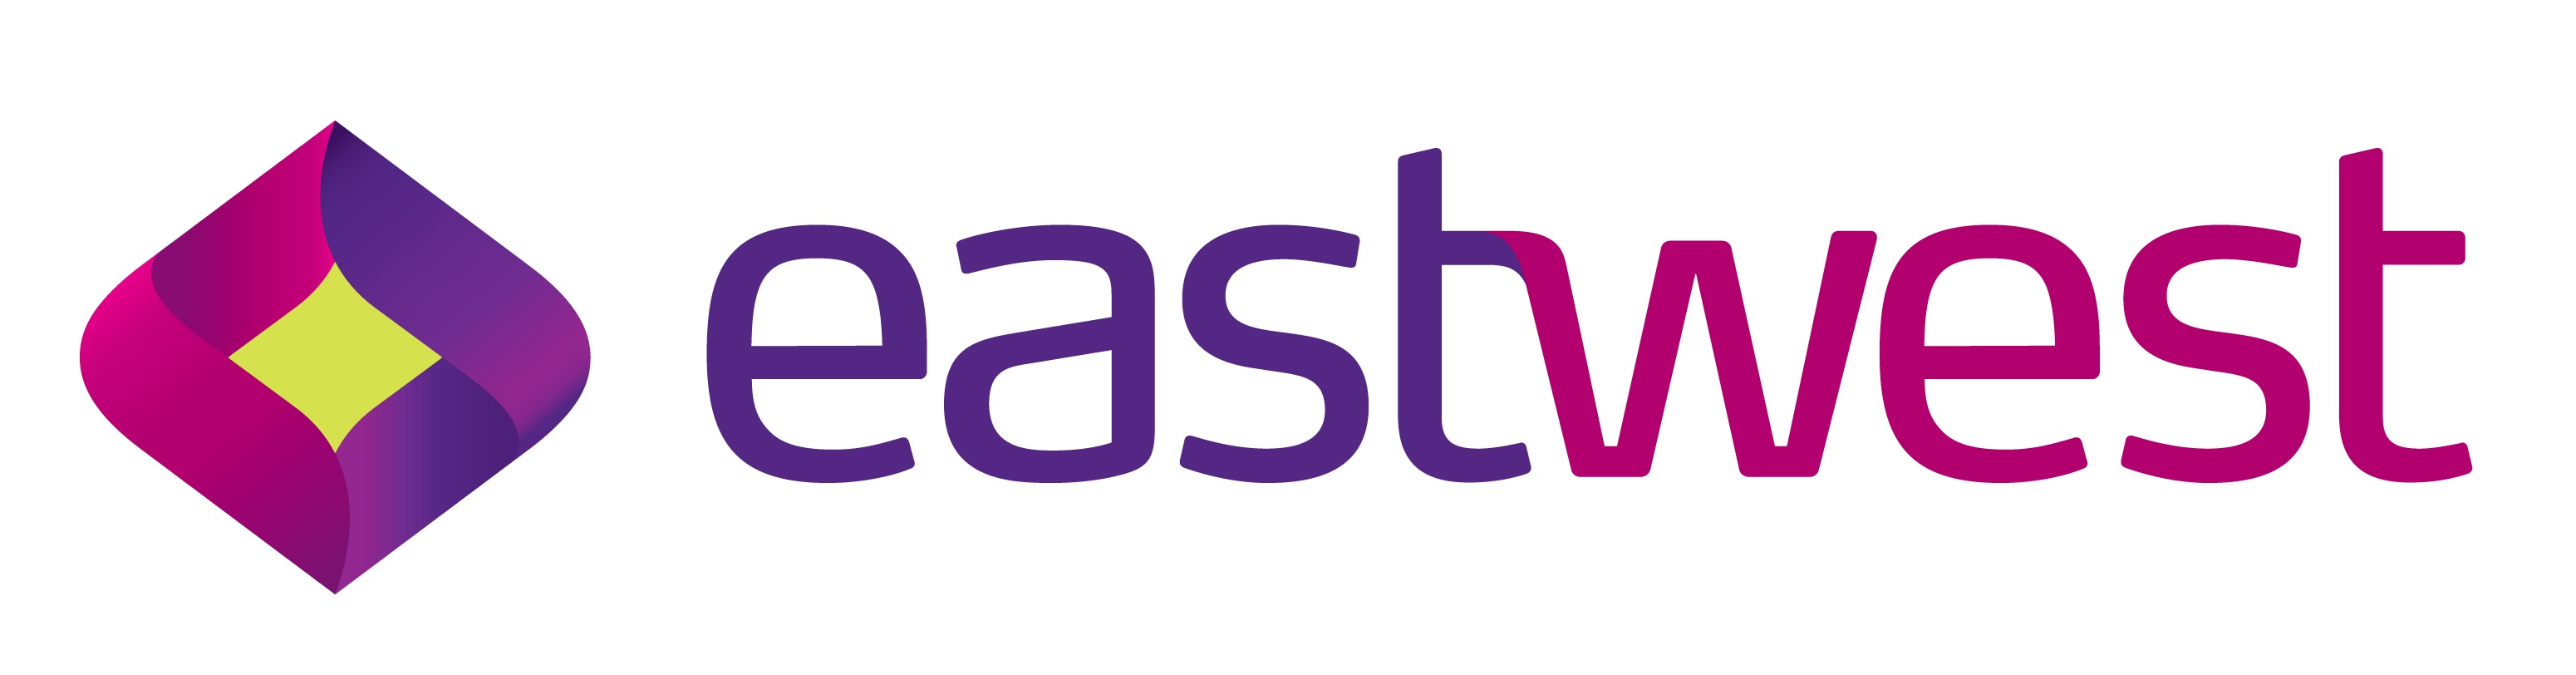 Easy EastWest Bank Loan Application